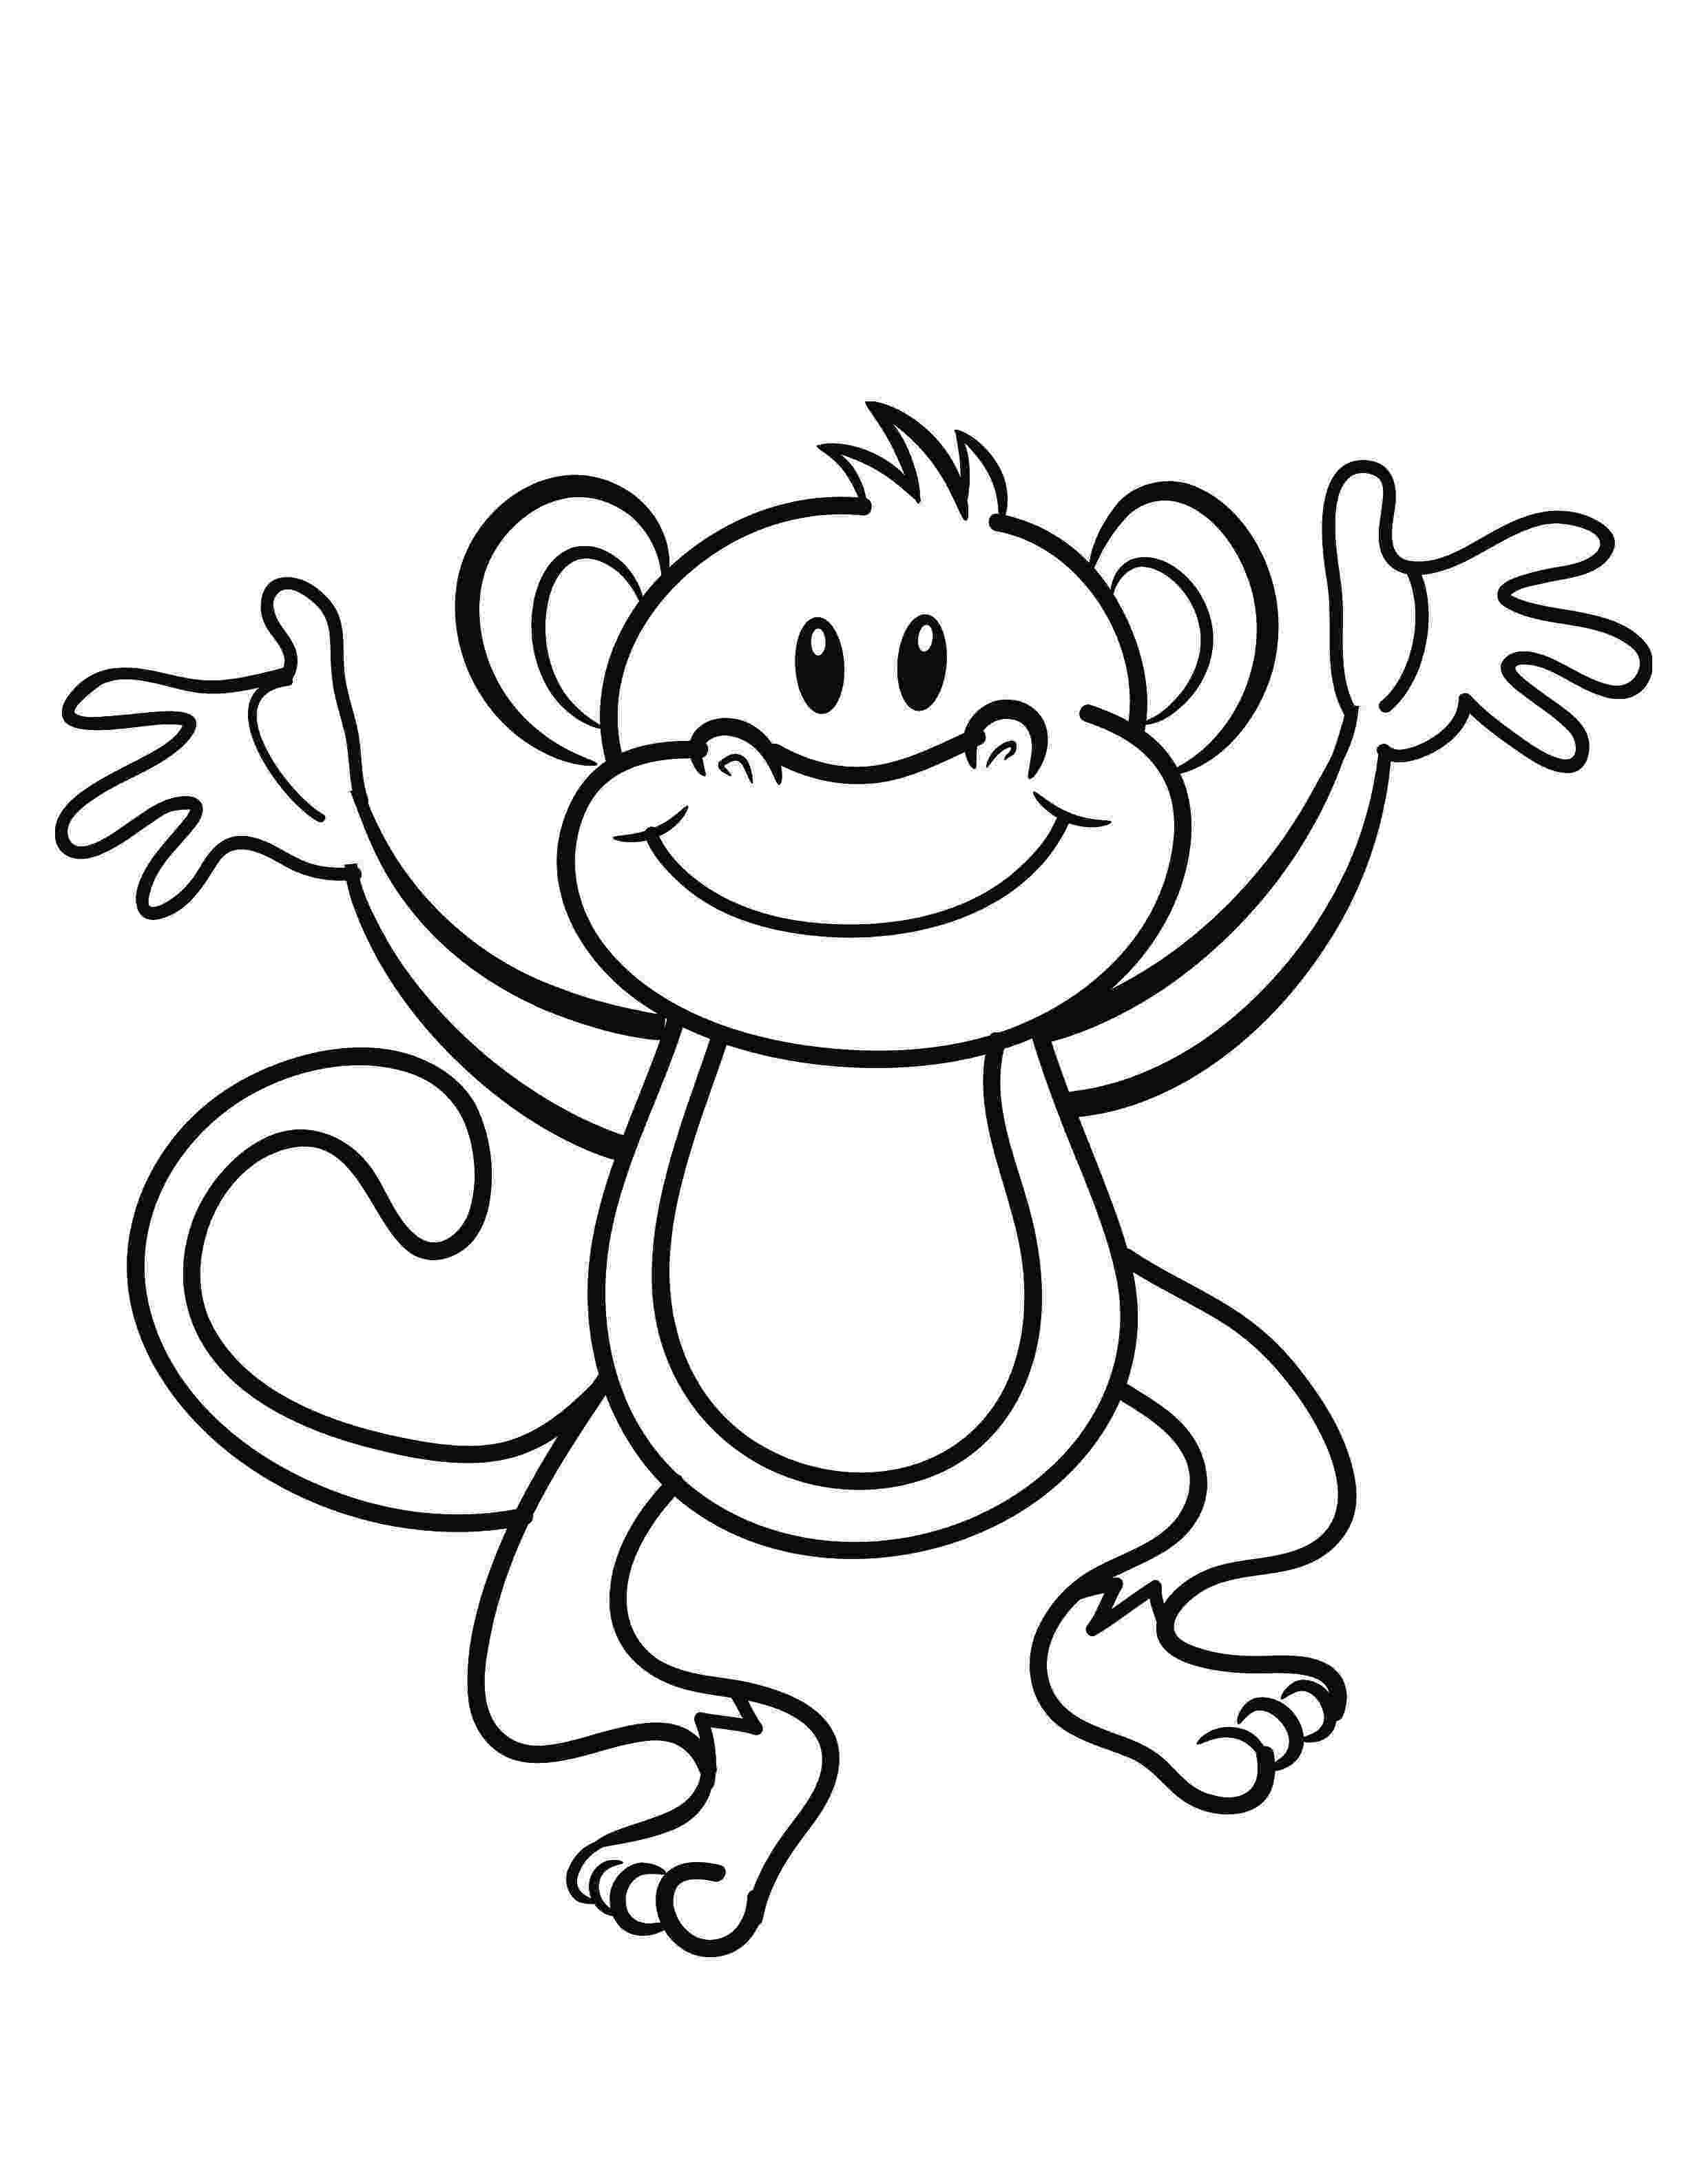 monkey coloring sheet monkey coloring pages getcoloringpagescom coloring monkey sheet